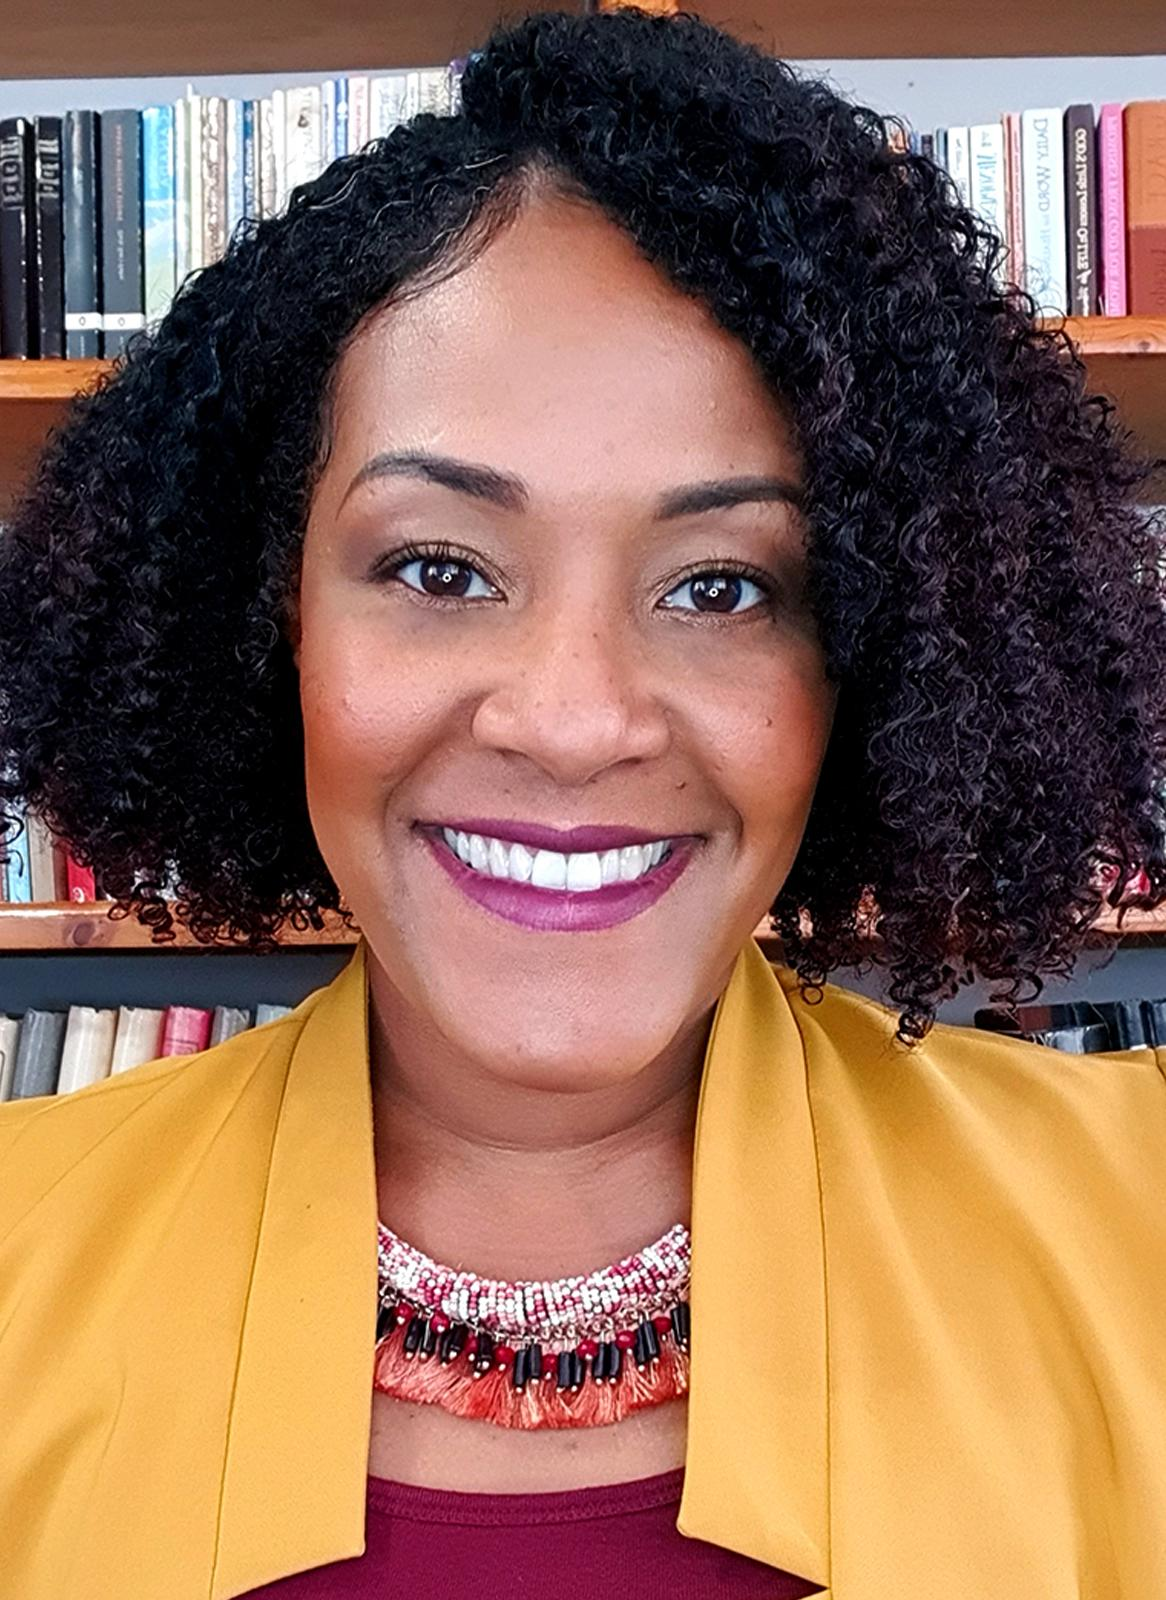 Solange Ludmila Duncan, MP in Sint Maarten. She has mid-length curls and wears a yellow jacket, maroon top and lipstick